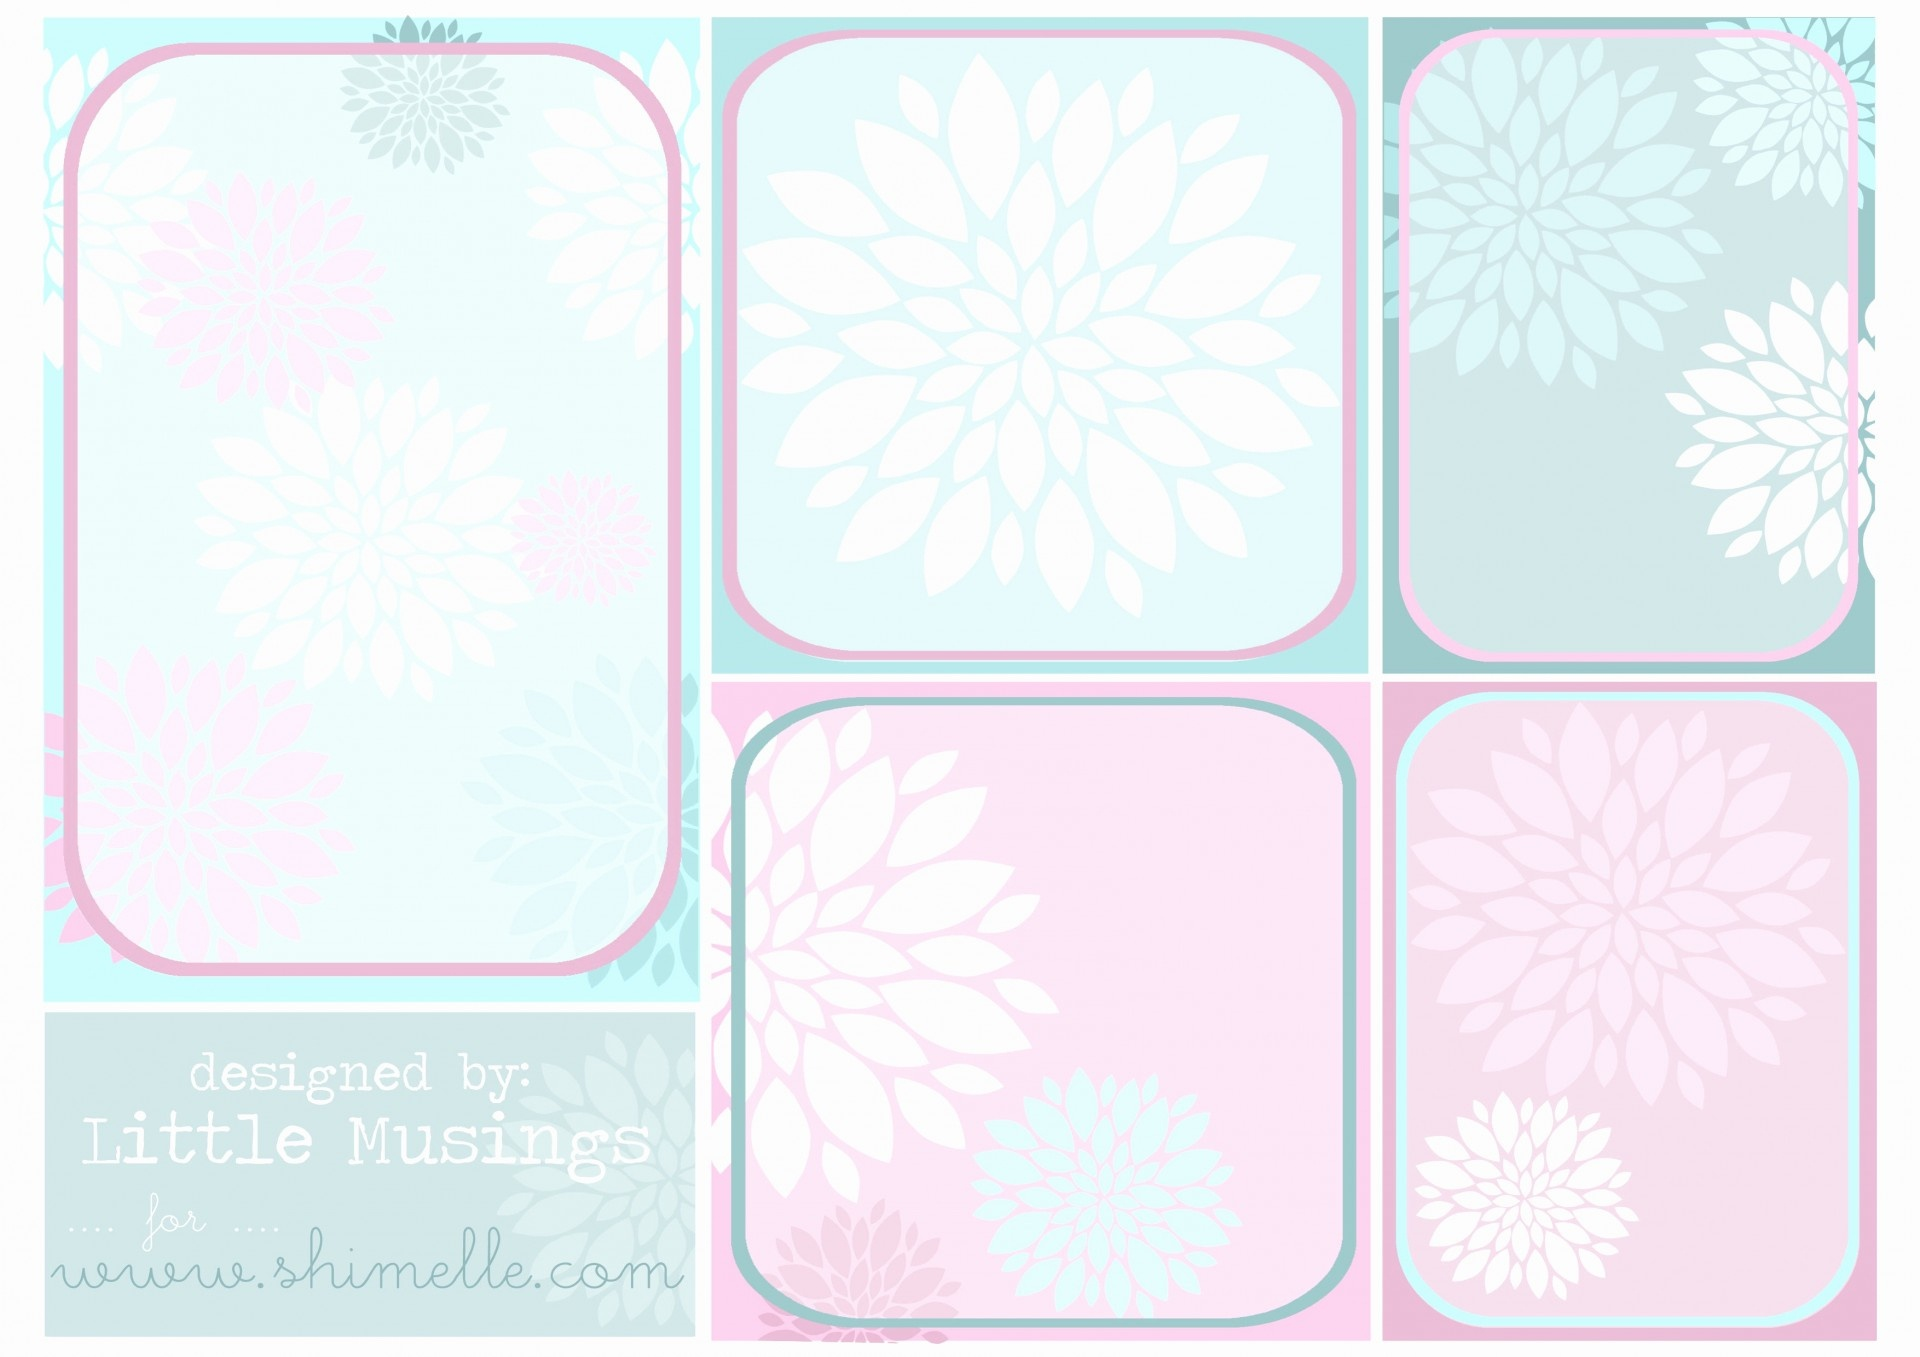 002 Free Printable Scrapbook Templates Fresh Best Pages Line Design - Baby Scrapbook Templates Free Printable